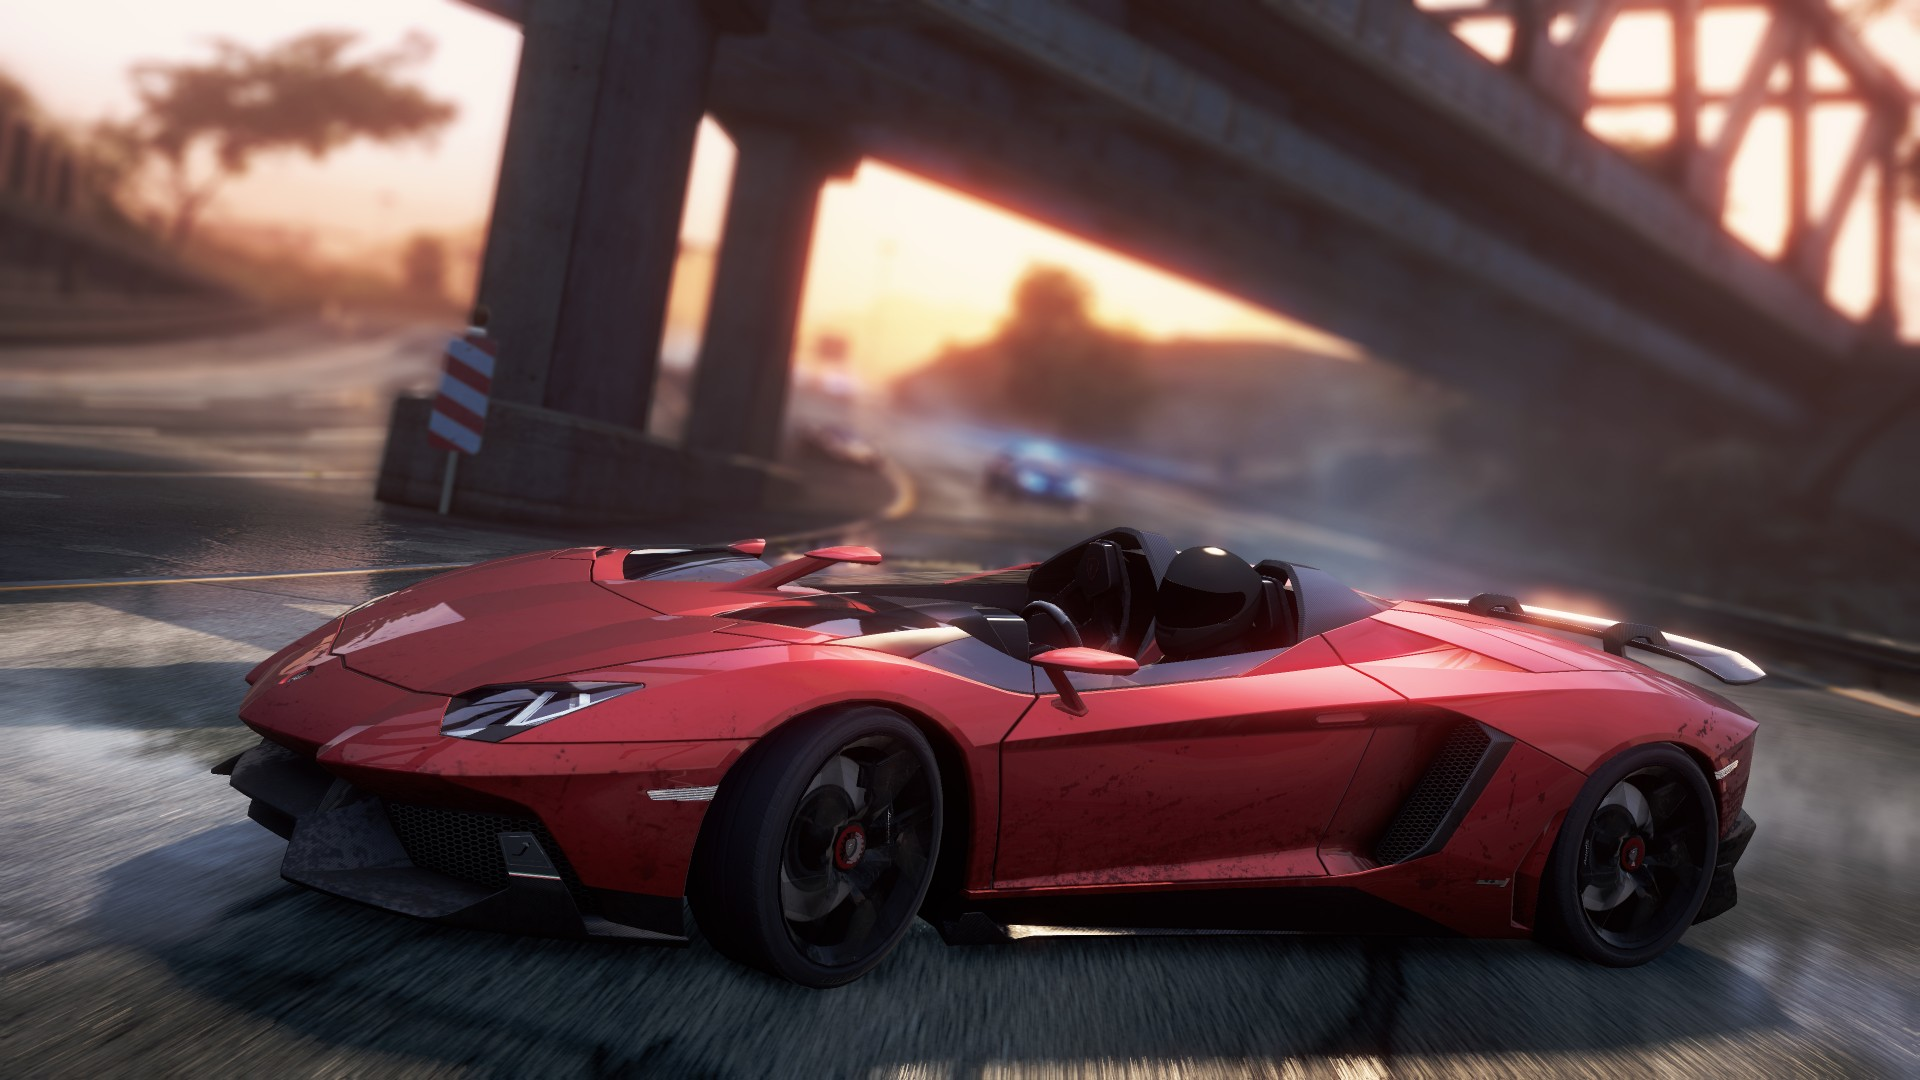 Lamborghini Aventador J Need for Speed Most Wanted 1080p Wallpaper 1920x1080